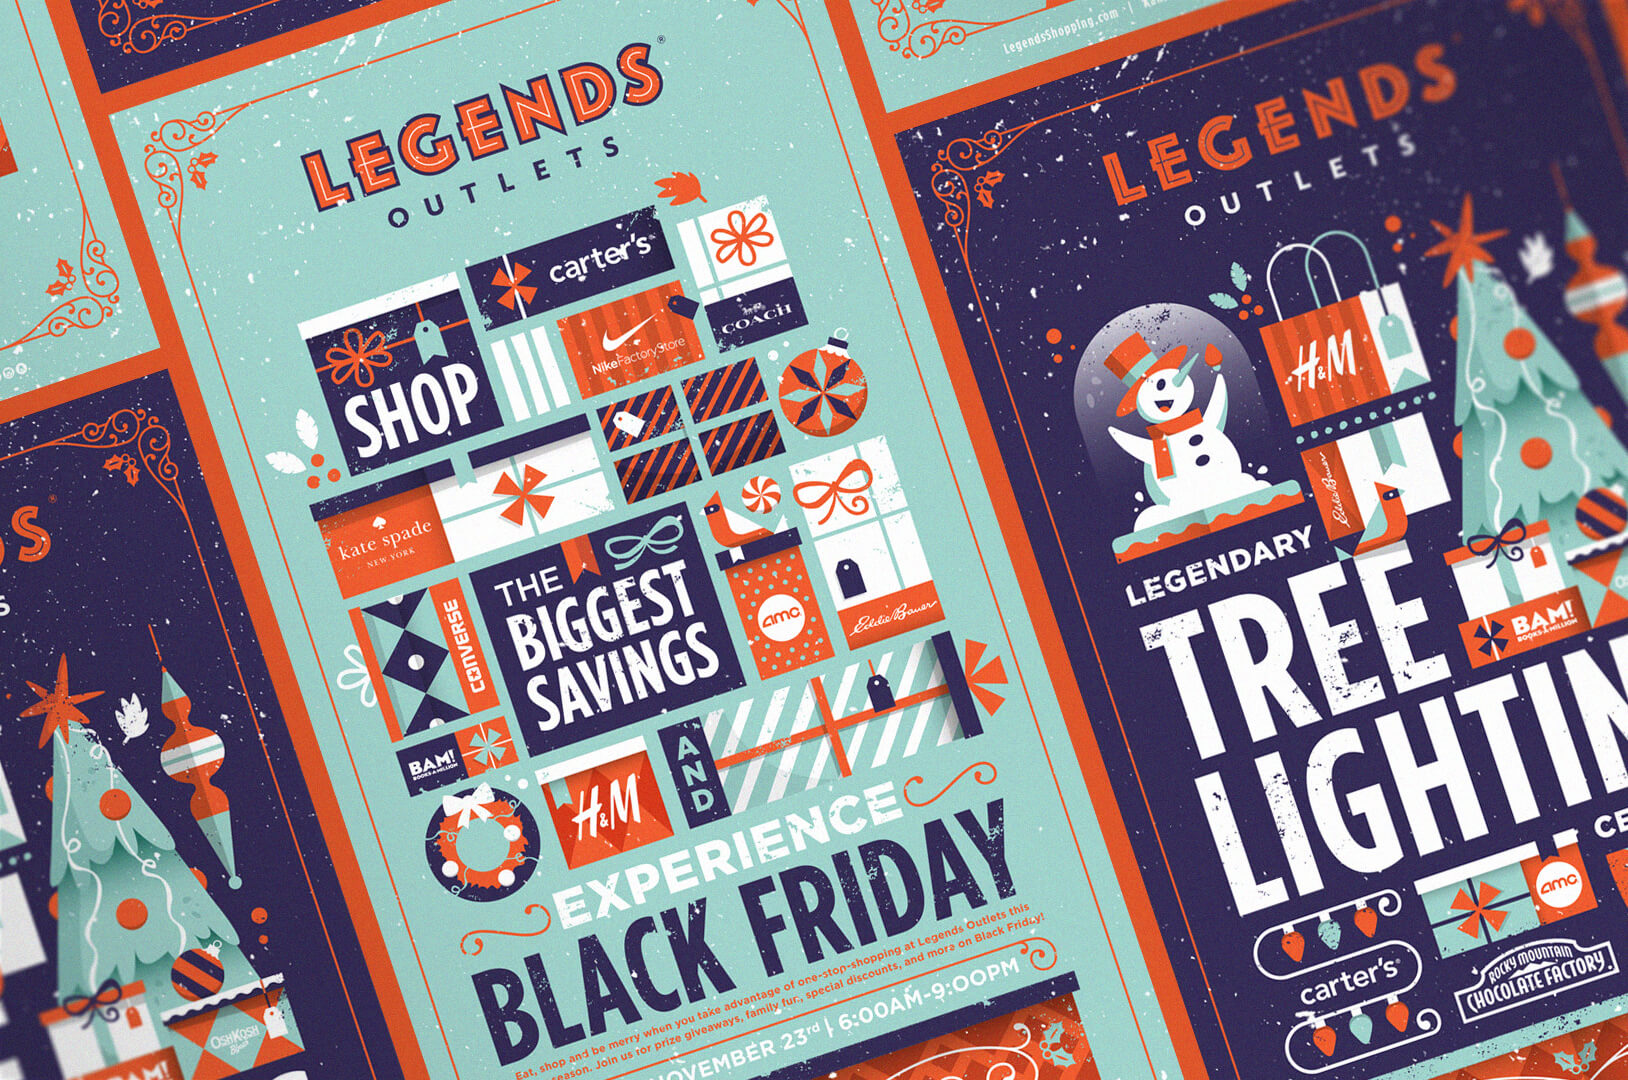 Kansas City's Legends Outlets holiday campaign creative.